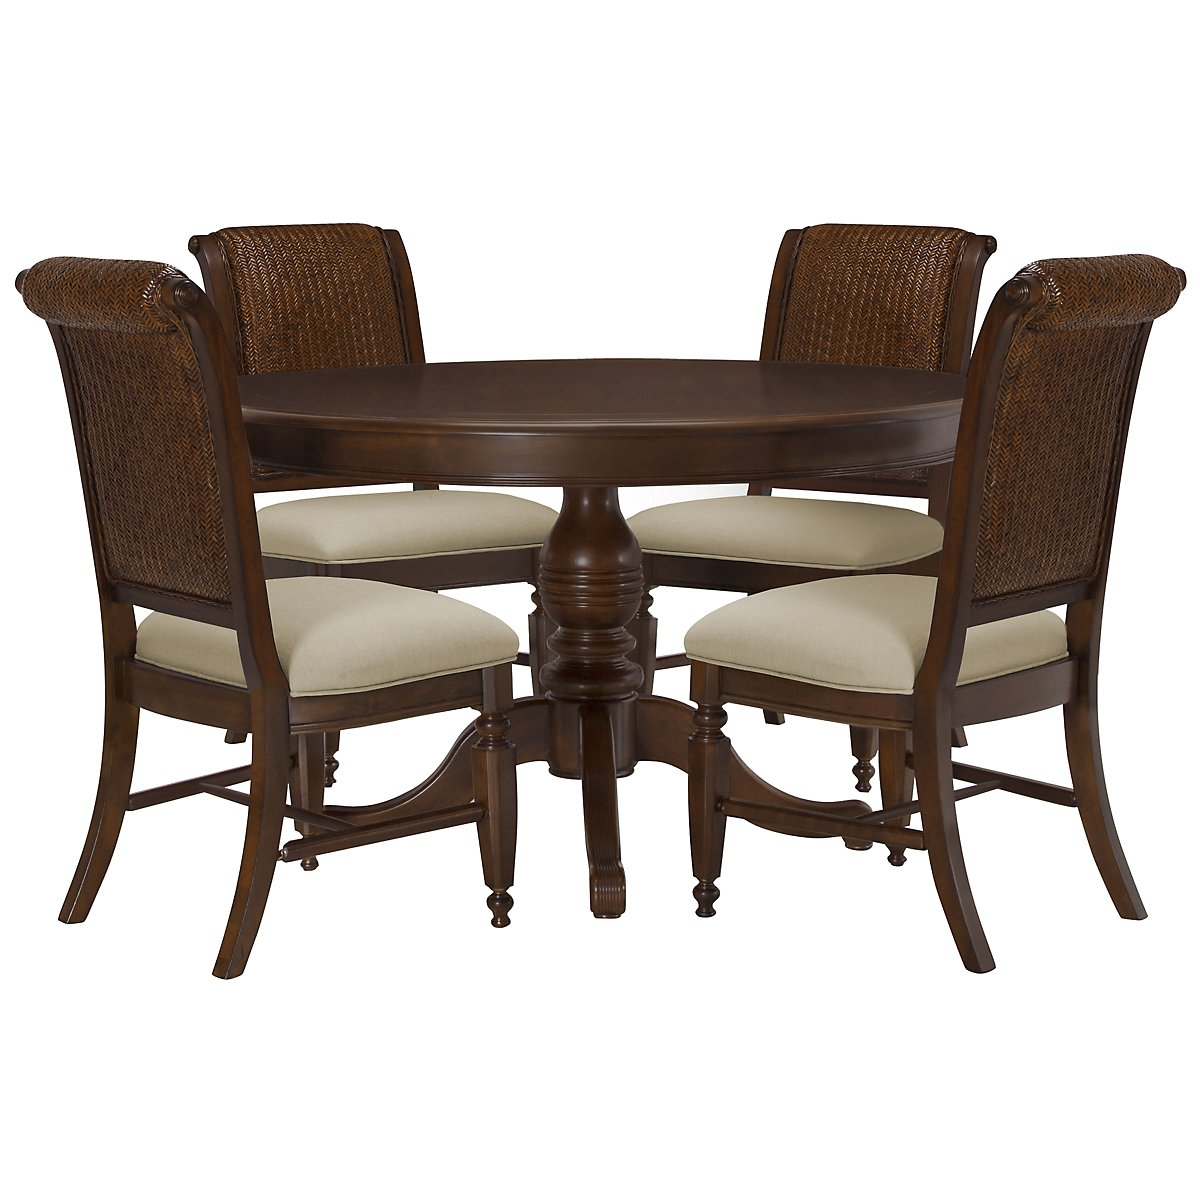 Claire Dark Tone Round Table & 4 Woven Chairs